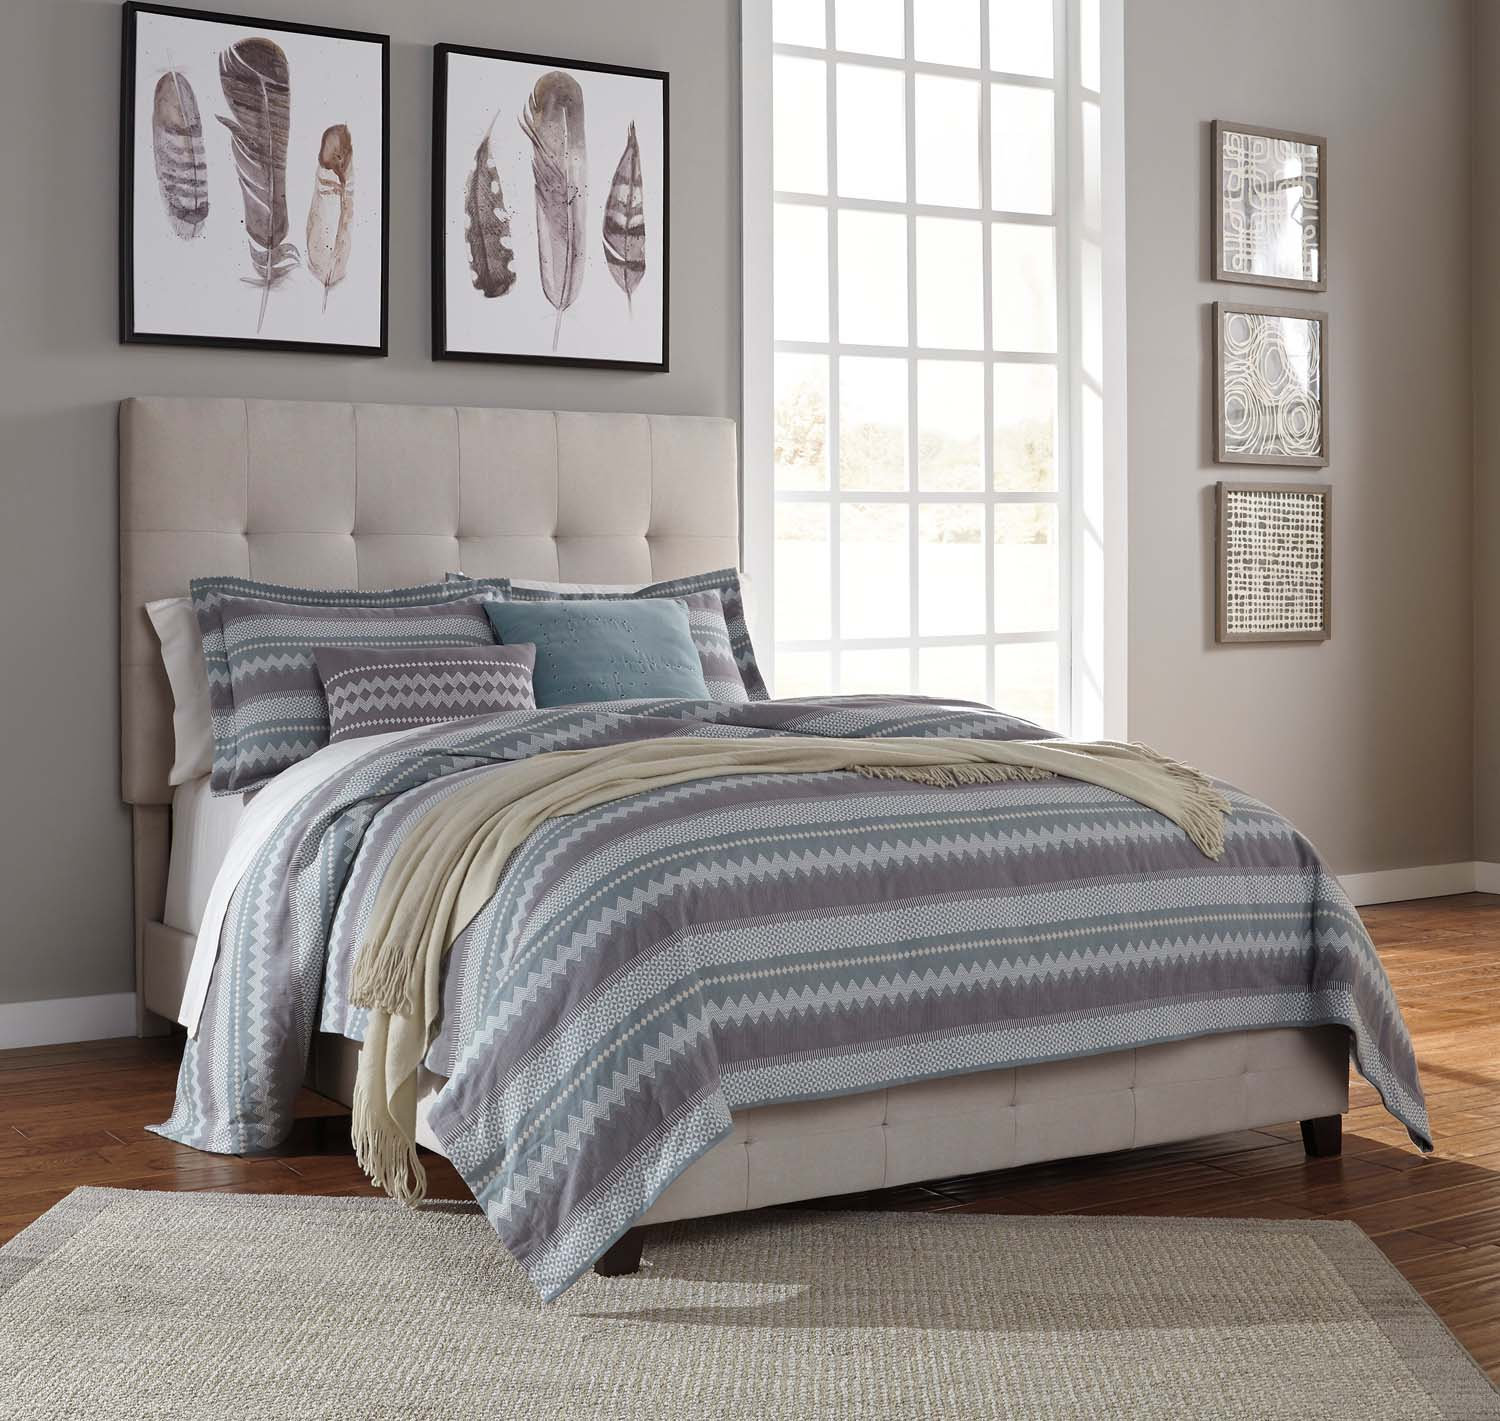 B130481 Queen Upholstered Bed By Ashley Furniture | Beharu0027s Furniture In  Everett, WA